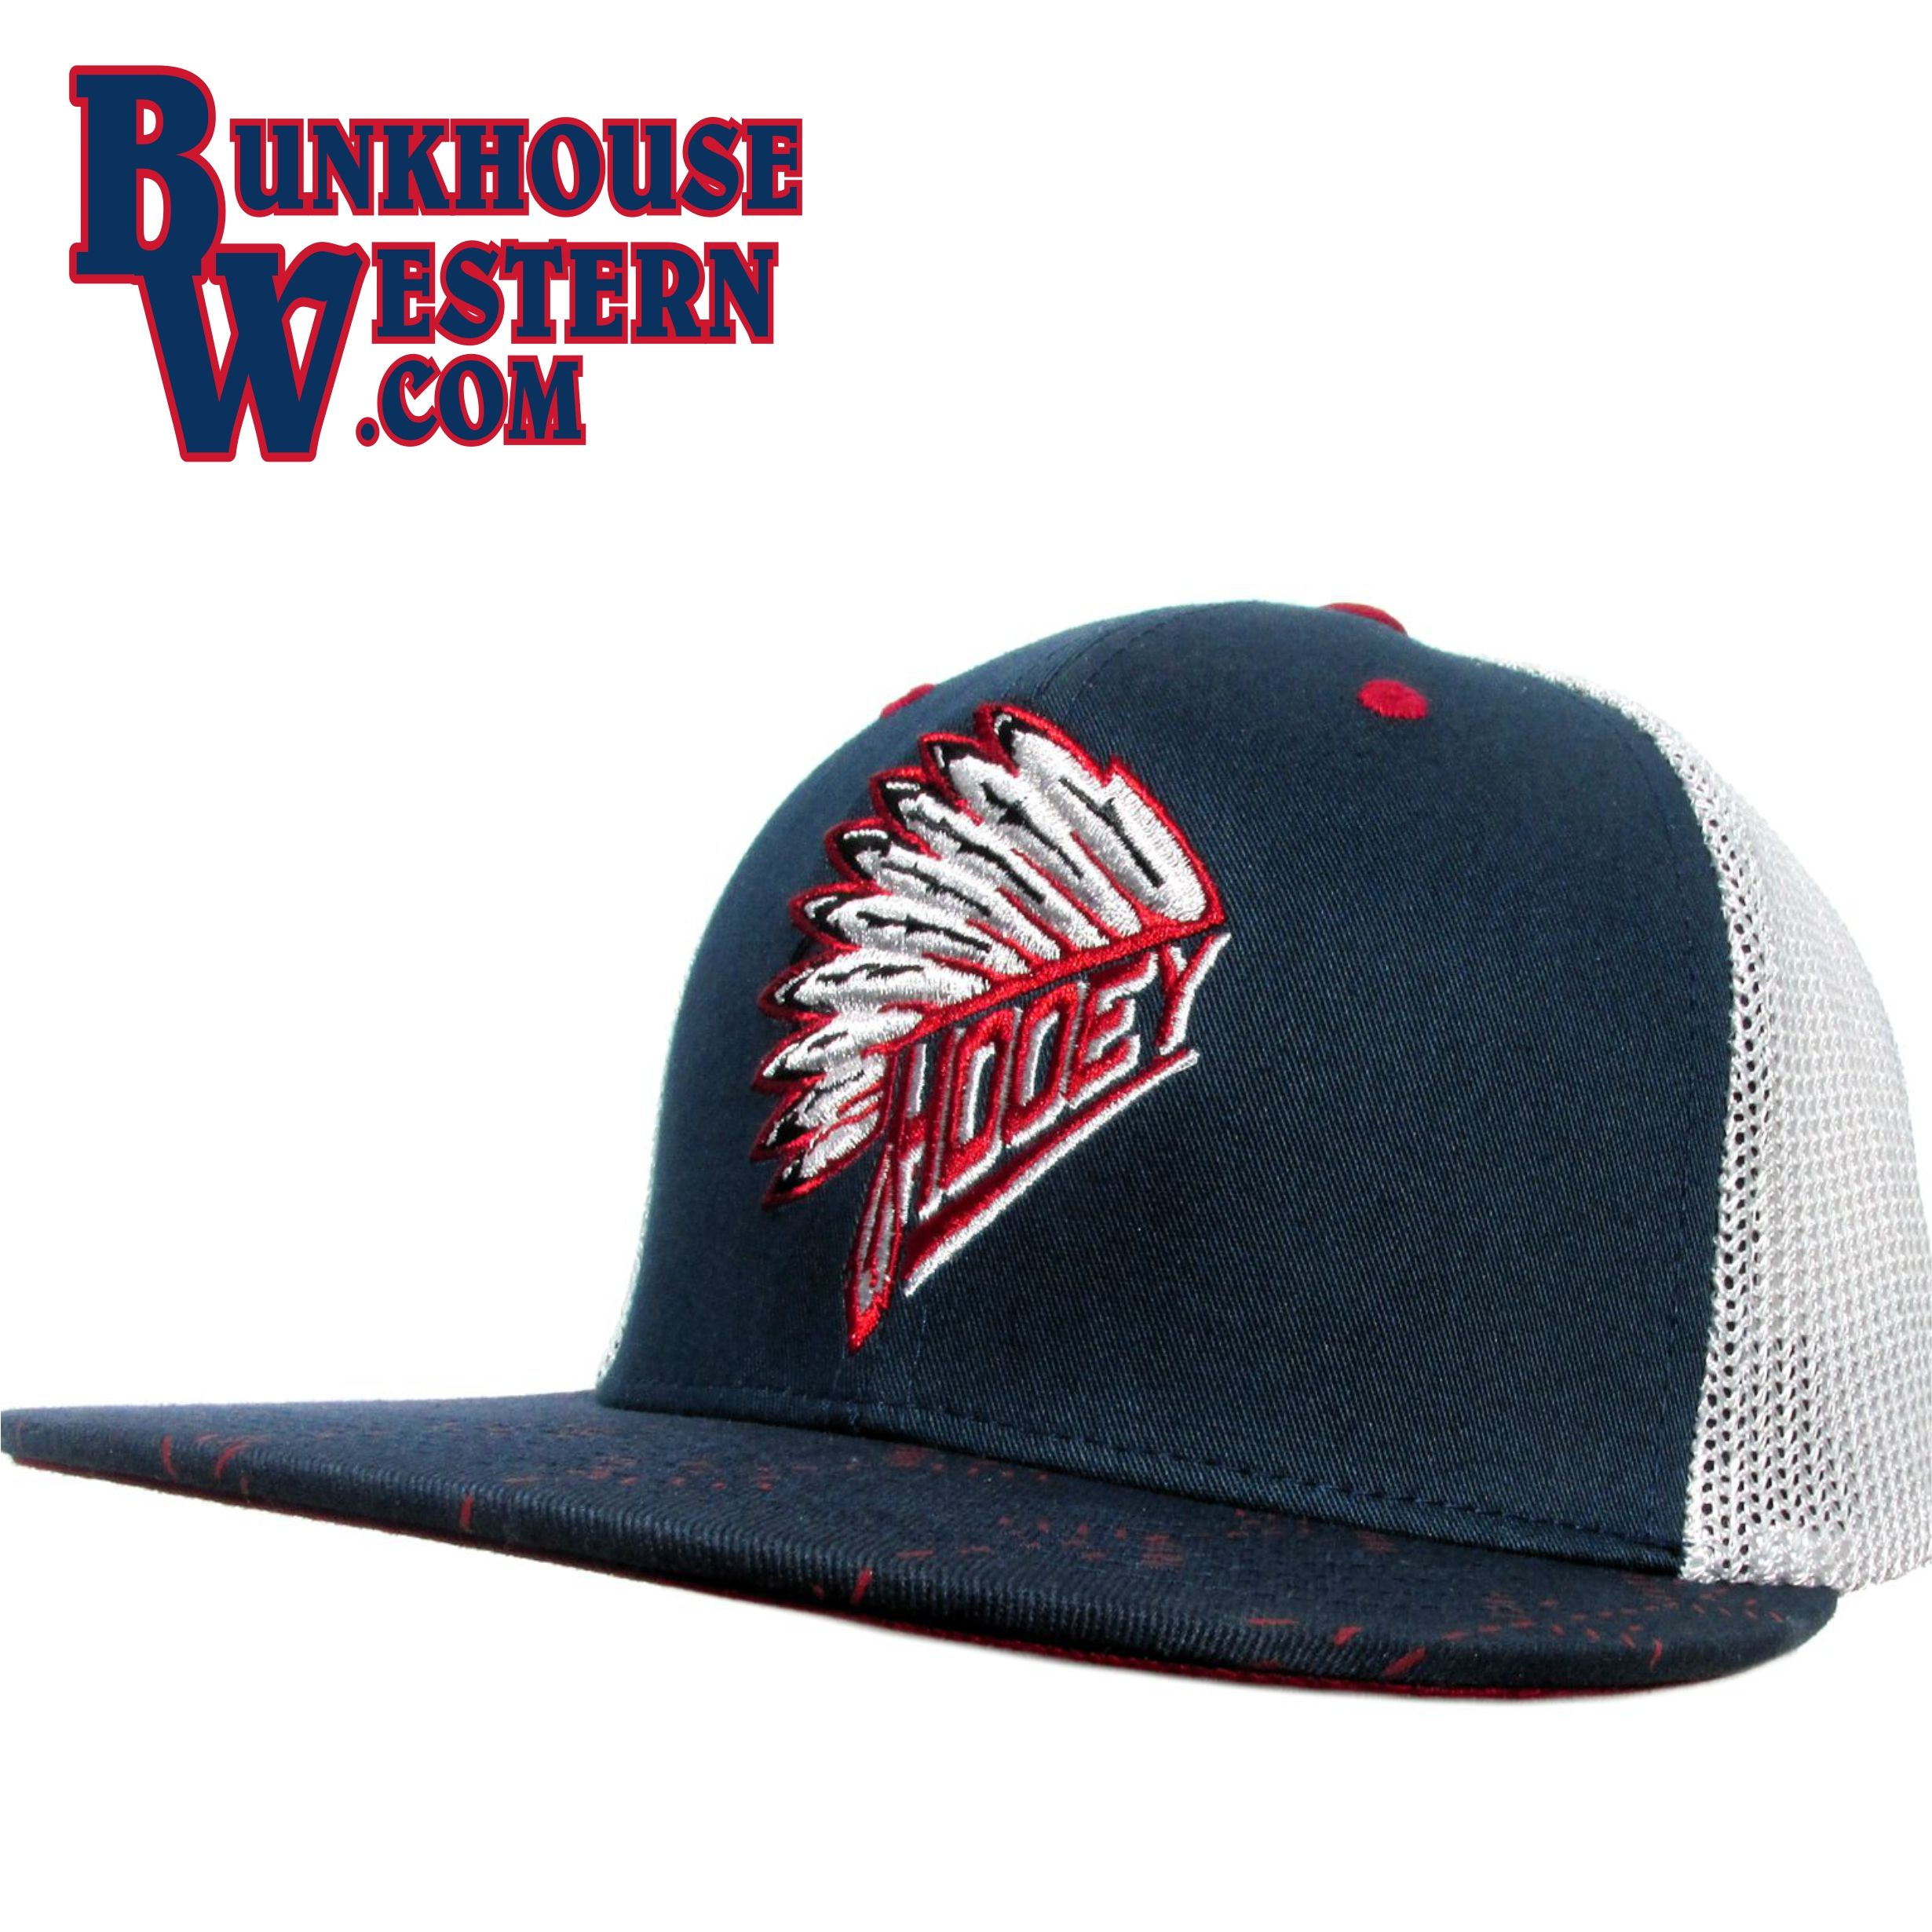 39260c3d9c Hooey, Quanah, Trucker Hat, Native American, Headdress, Cowboy Hat, $30.98